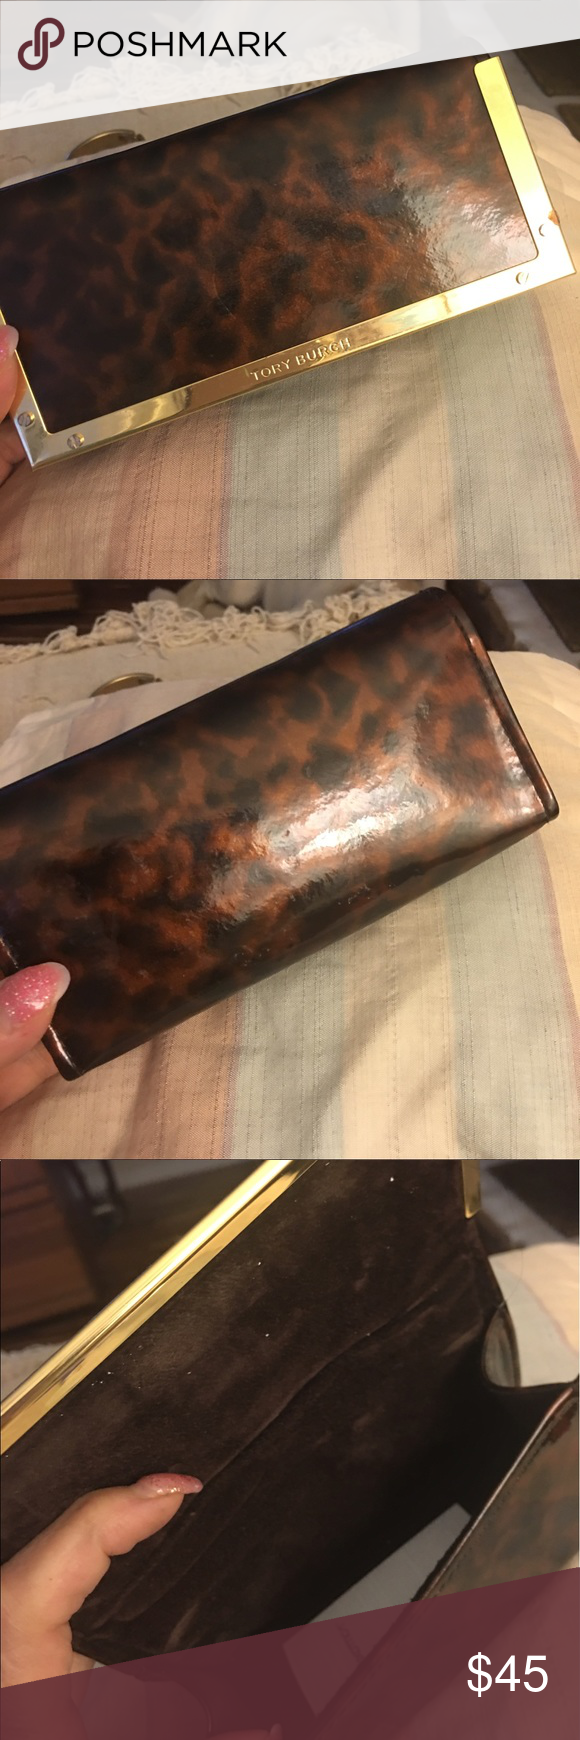 Tory Burch glasses case Gorgeous Tory Burch glasses case with goldtone hardware velvet inside deep case large enough for large sunglasses hard sided tortoise shell design Tory Burch Accessories